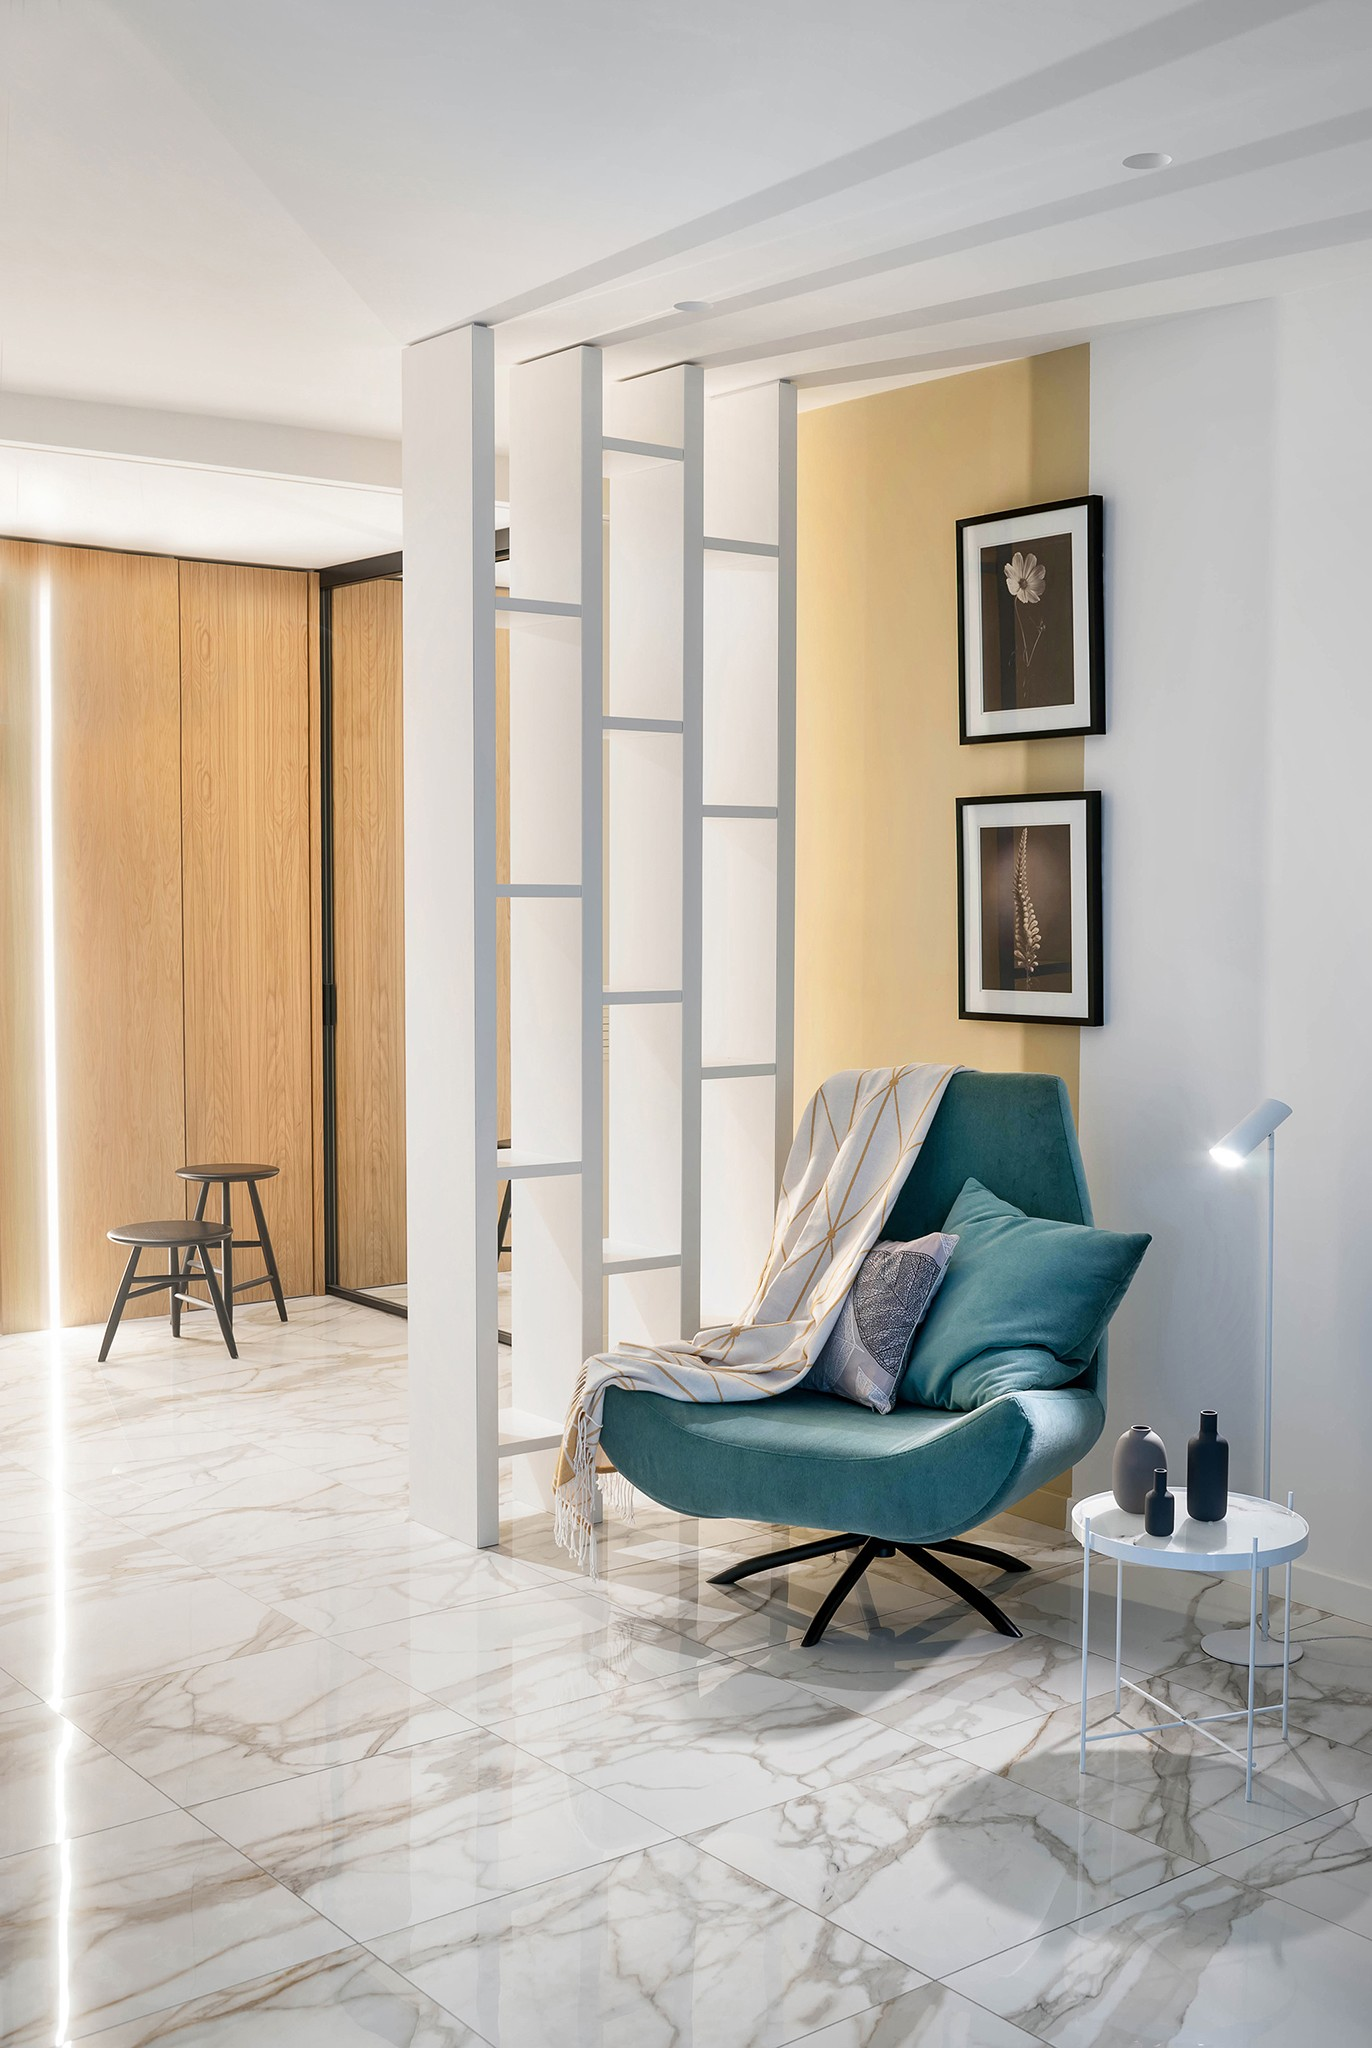 Interior photography of one apartment for the designer. Professional photographer Kirill Toll